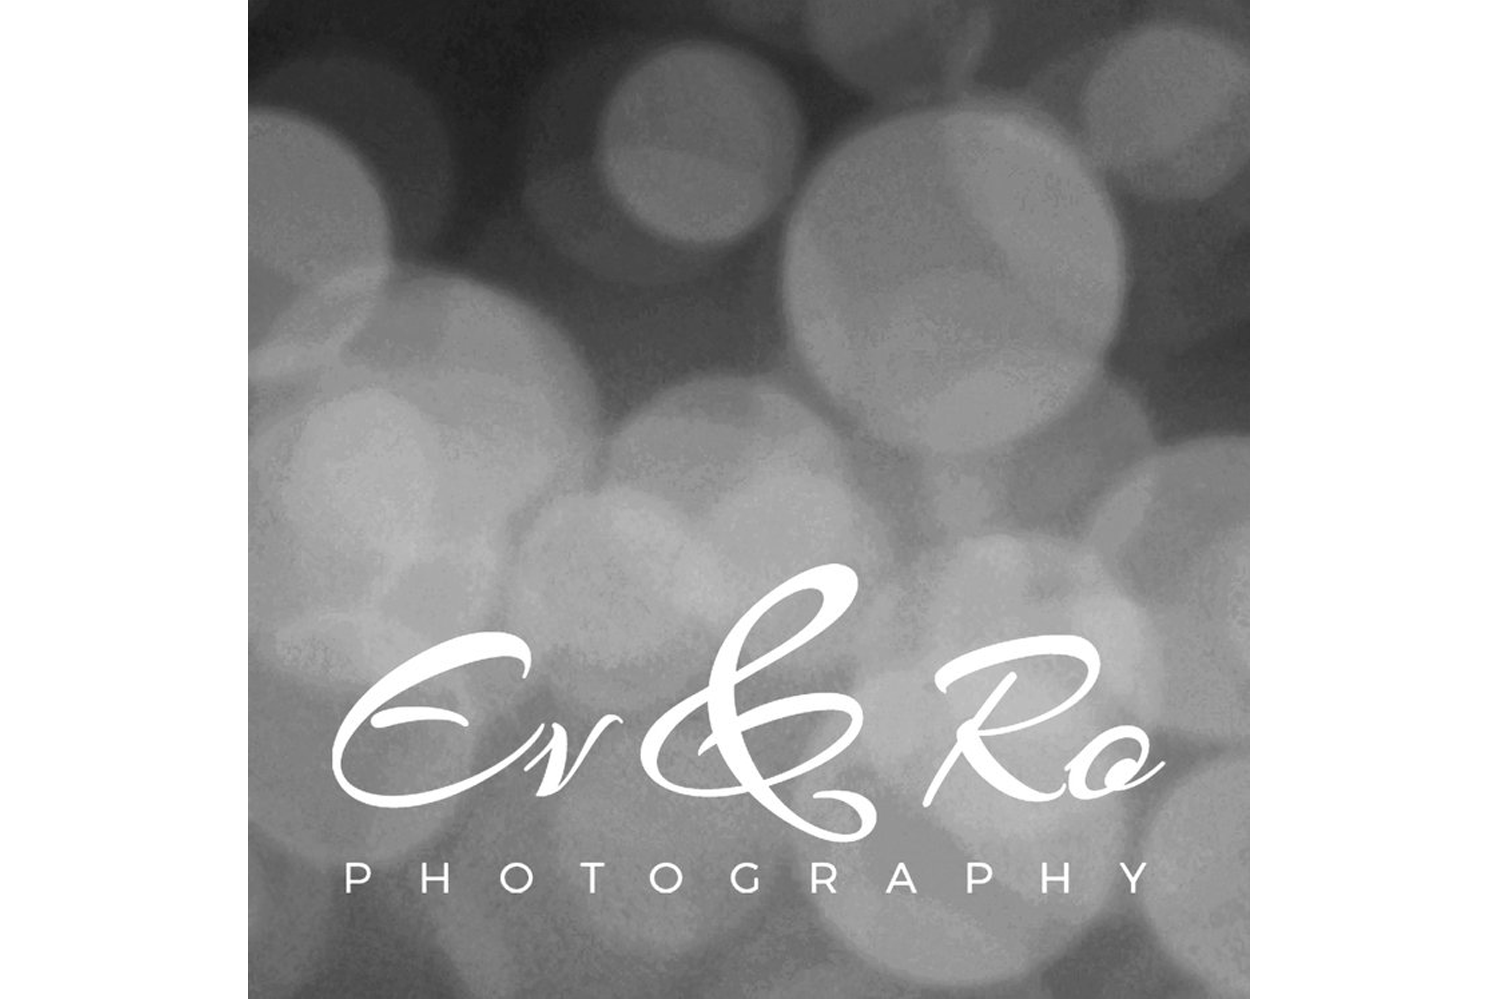 Photography specializing in women and their families - Capturing the spirit of the moment, whether it's one of joy or the middle of a tantrum...imperfection is perfect. It's real, it's art and it's all part of the story.